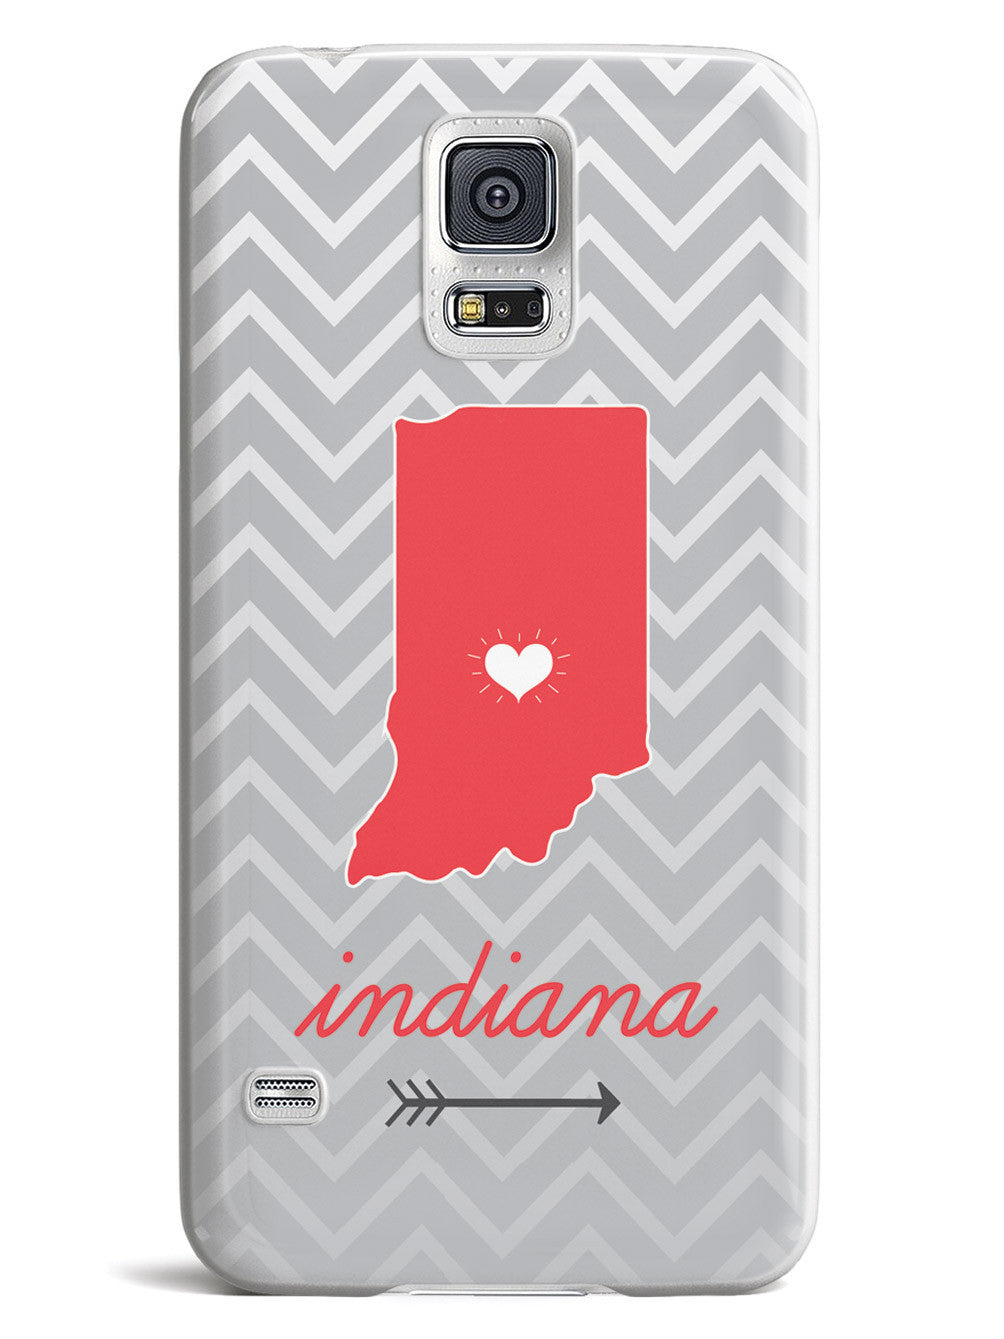 Indiana Chevron Pattern State Case